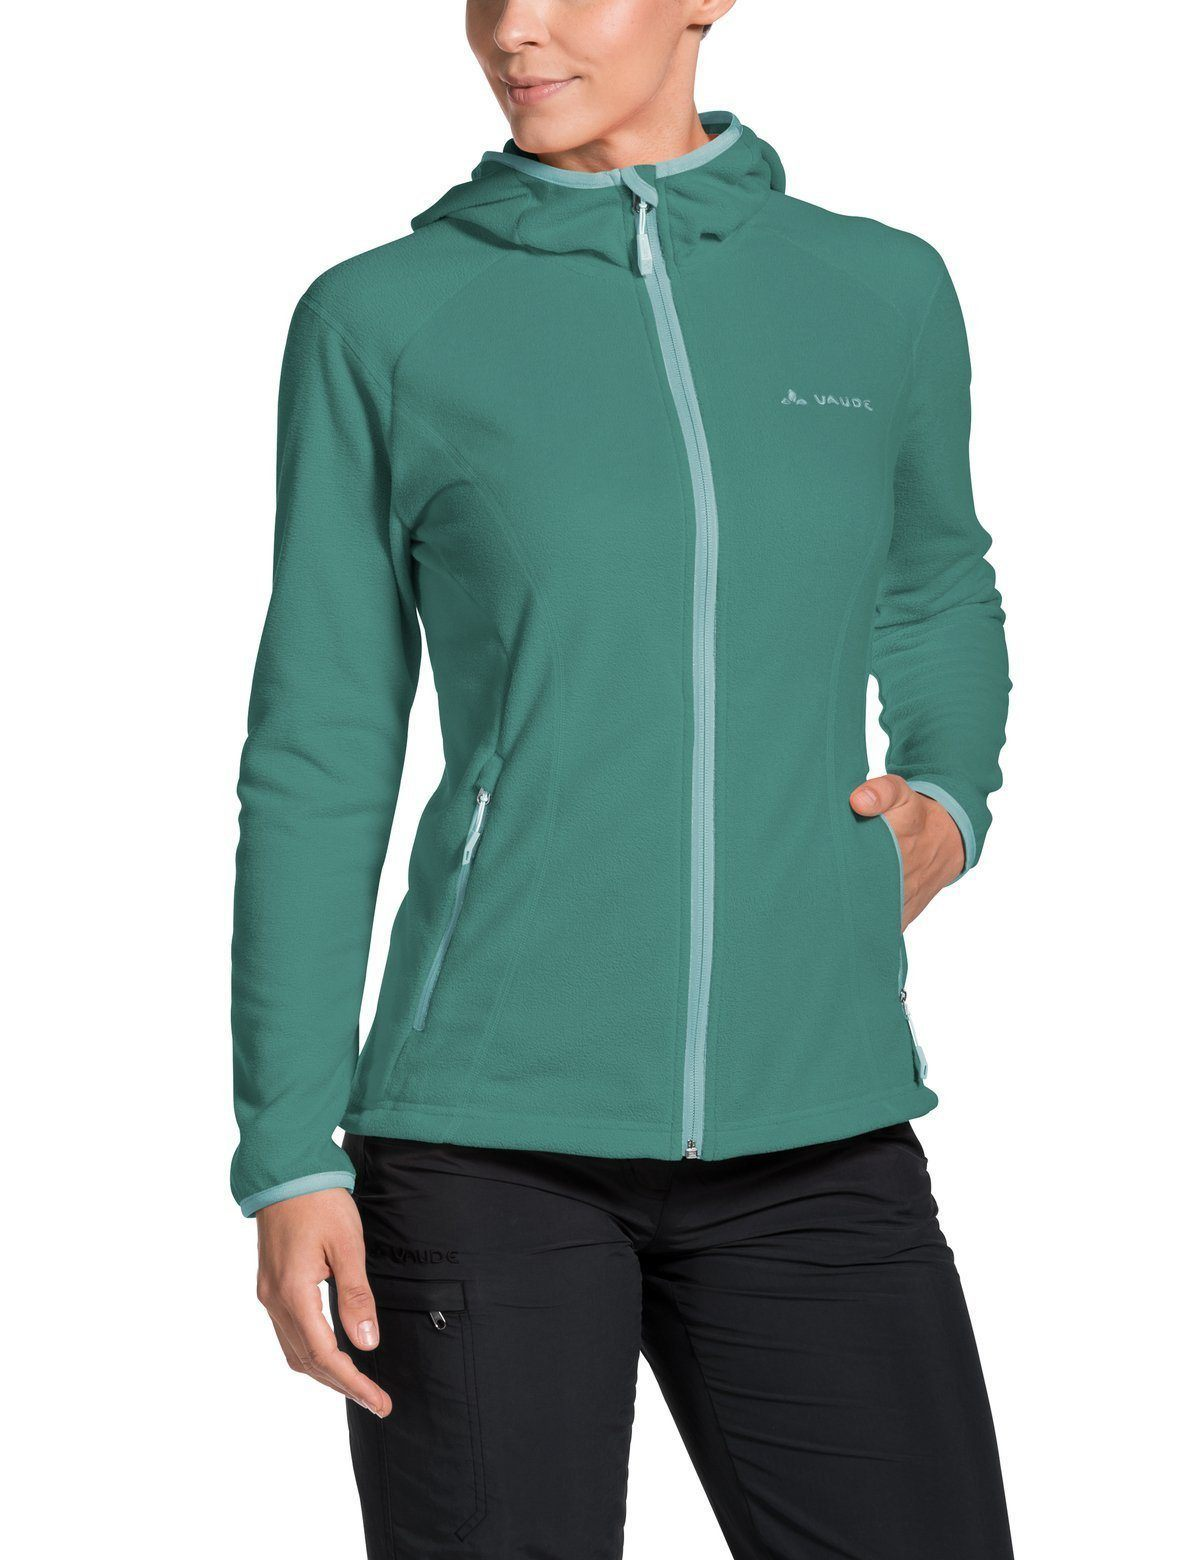 Vaude - Women's Sunbury Hoody Jacket - made from high-quality fleece - Weekendbee - sustainable sportswear